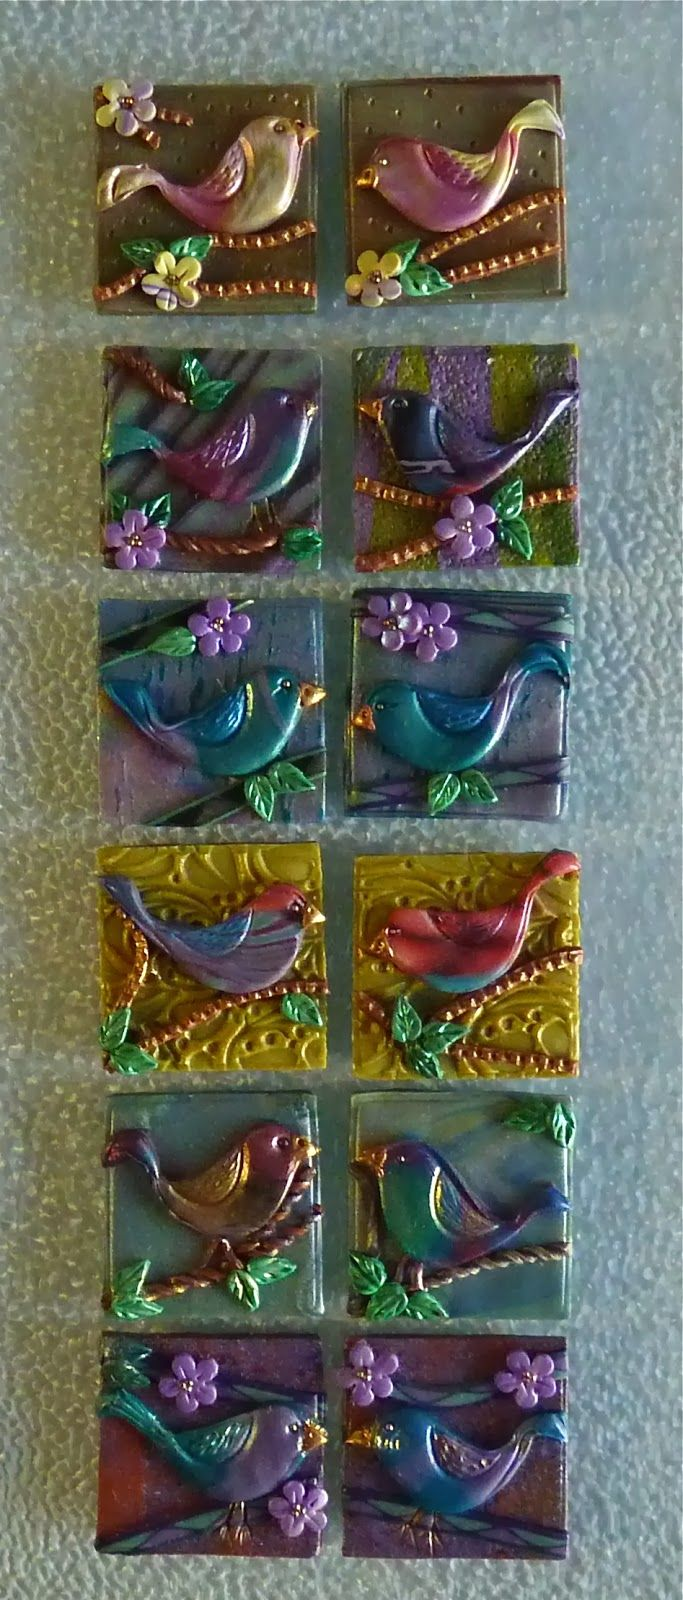 Knightwork: Playing with Clay - Polymer Clay Inchies